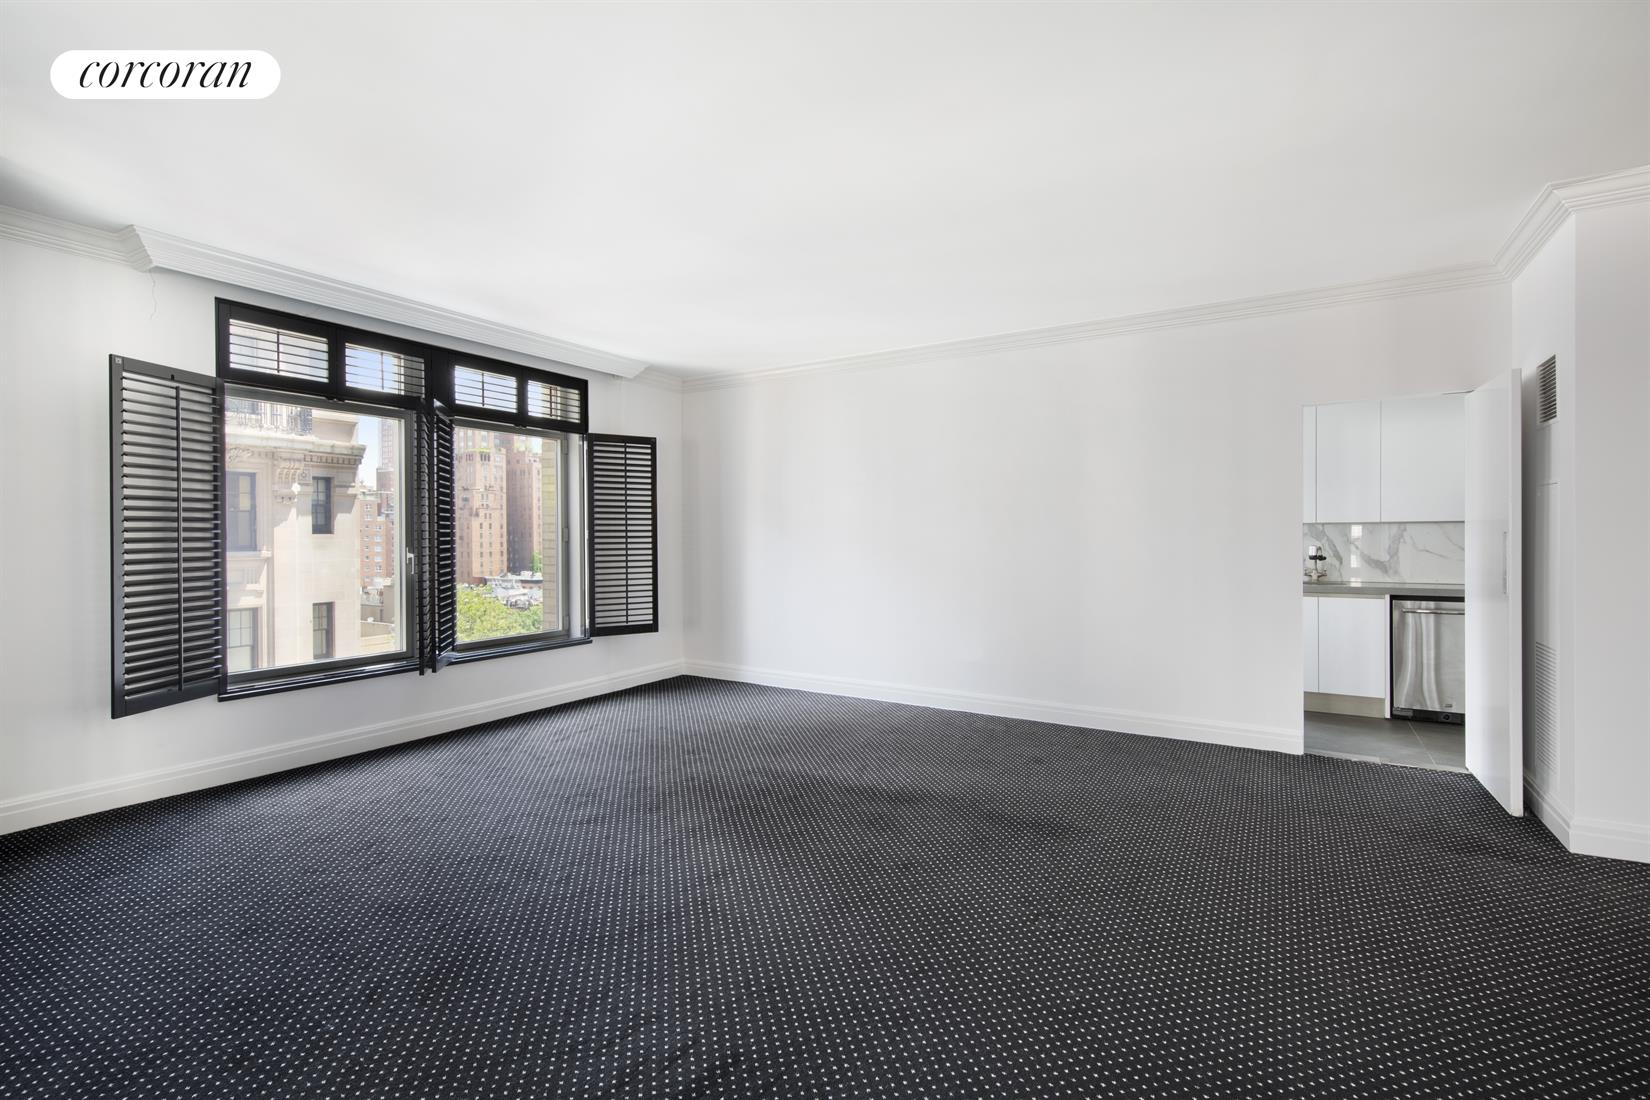 Corcoran 515 Park Avenue Apt 10 Fl Upper East Side